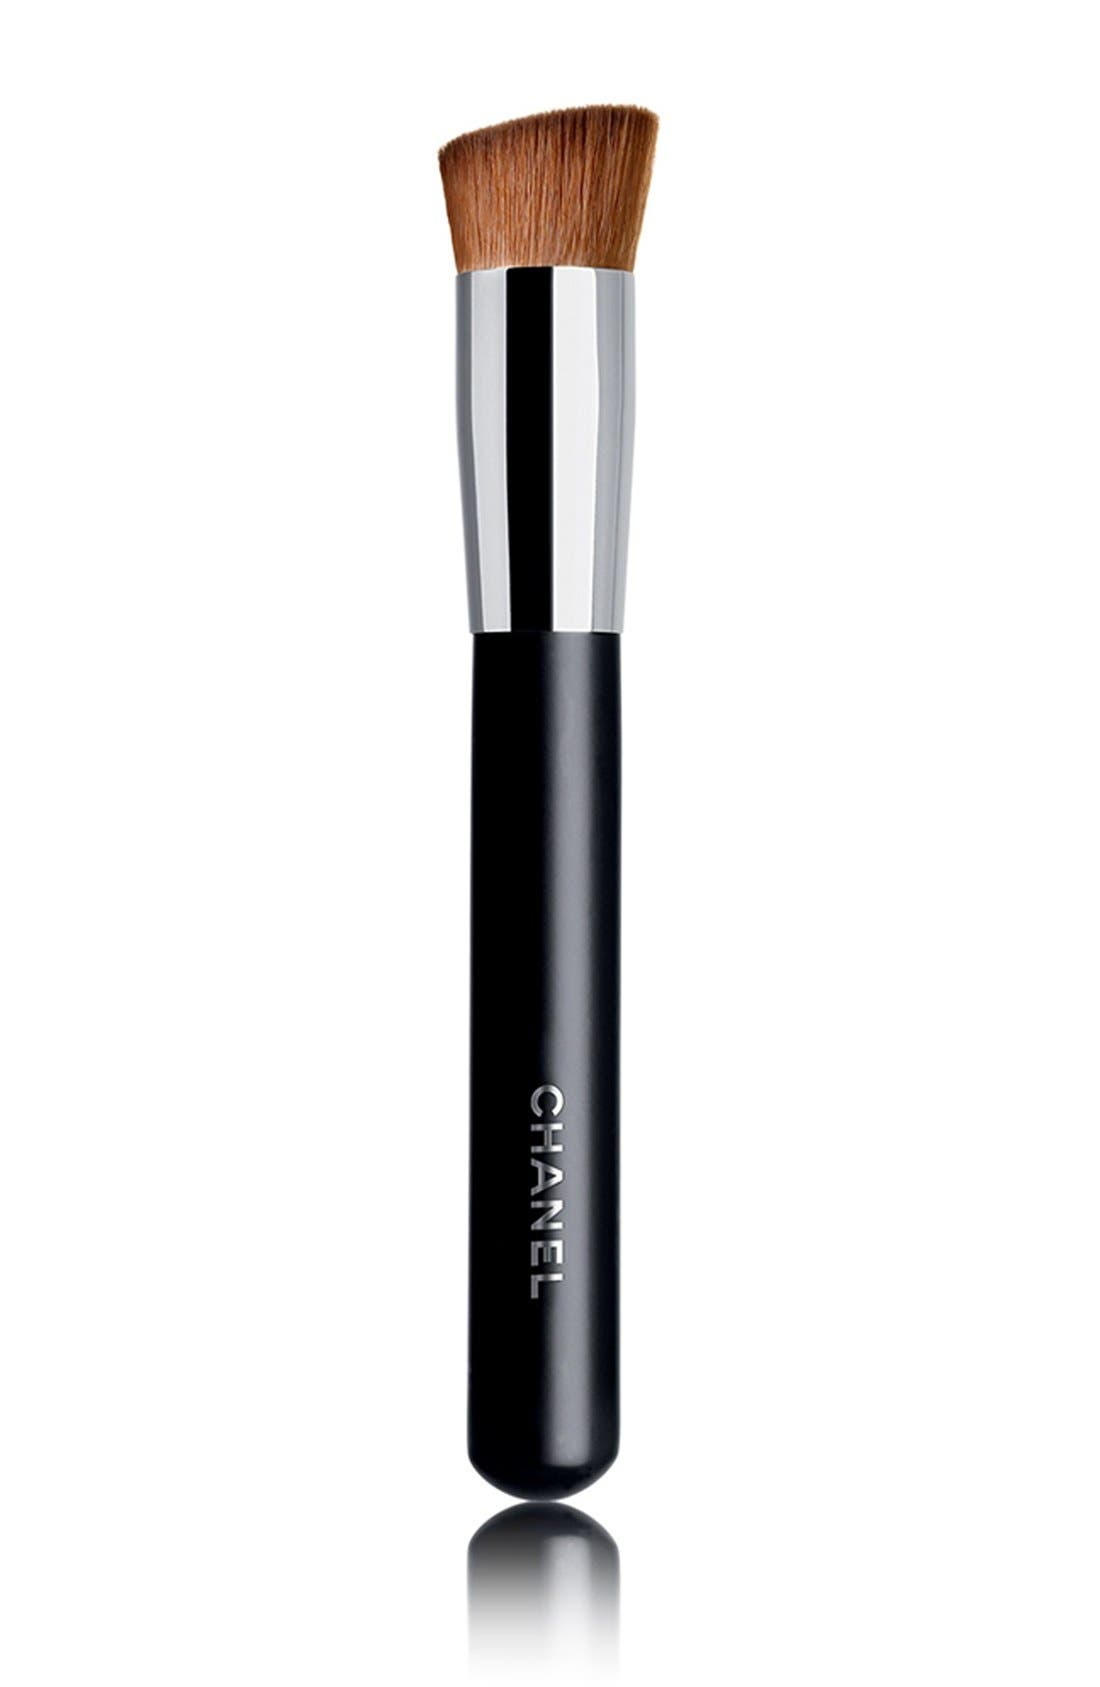 PINCEAU TEINT<br />2-in-1 Foundation Brush Fluid and Powder,                         Main,                         color, 000